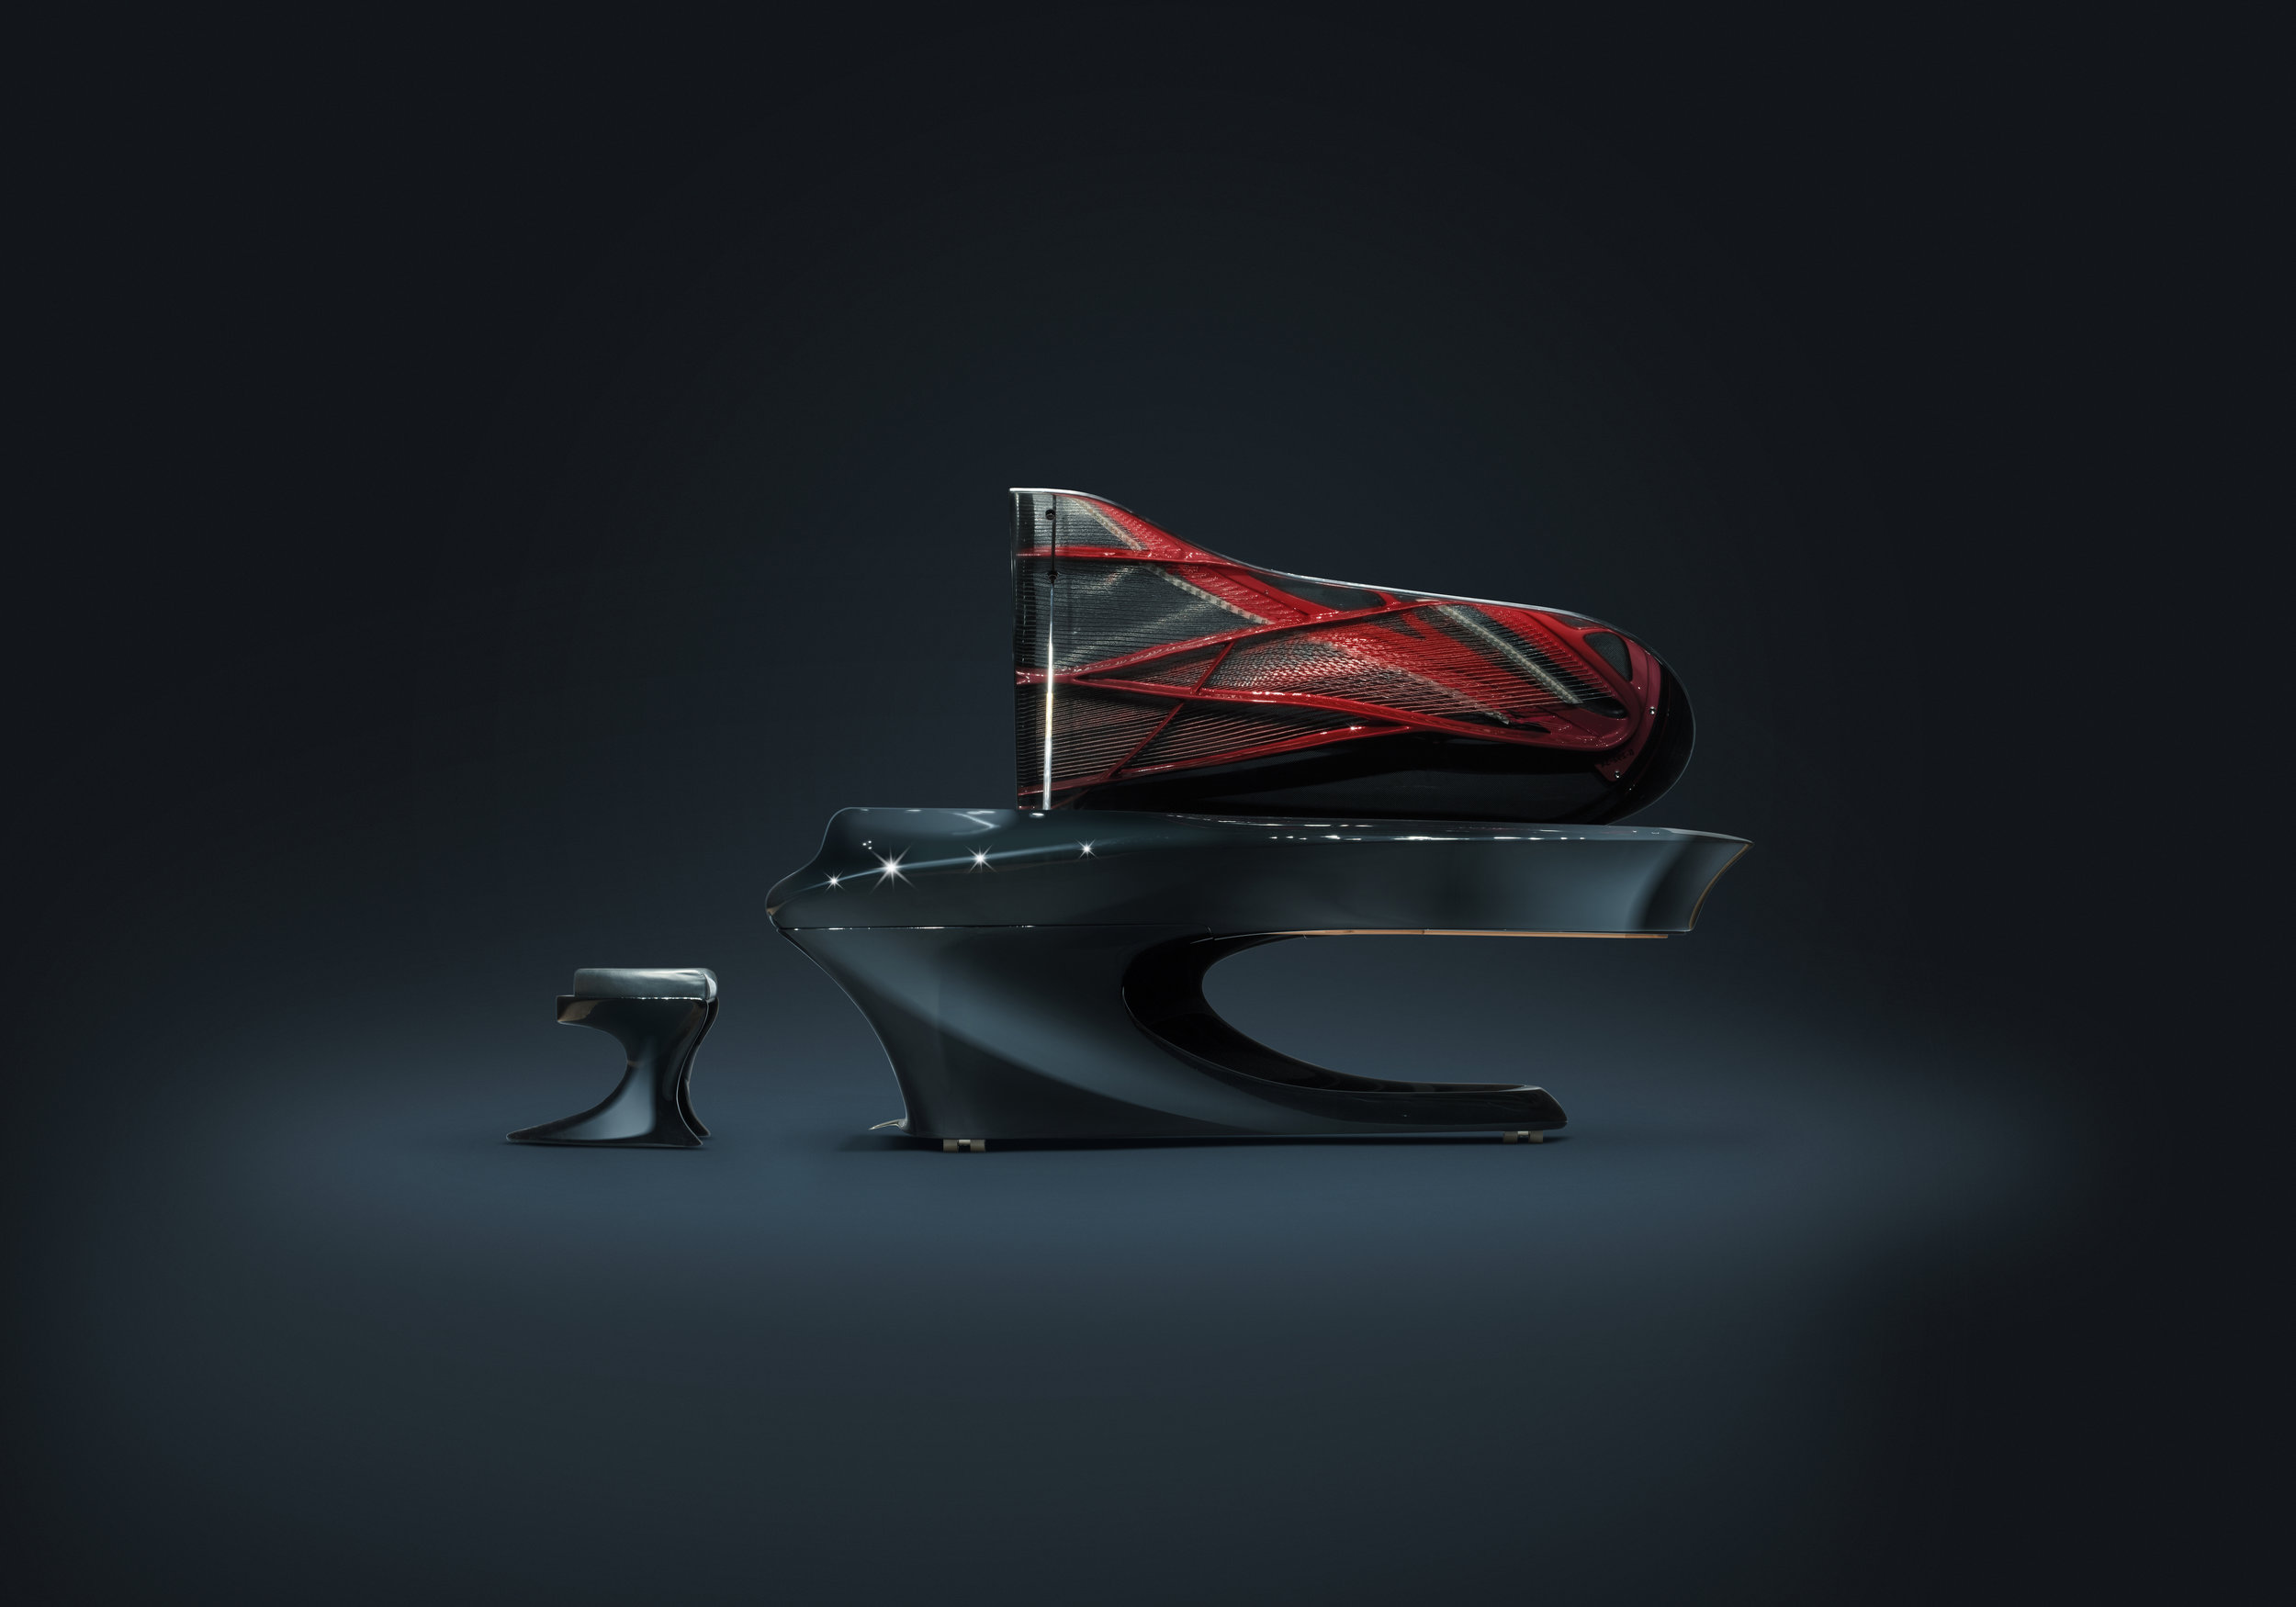 The stunning curves and flows of the new Bogányi grand piano